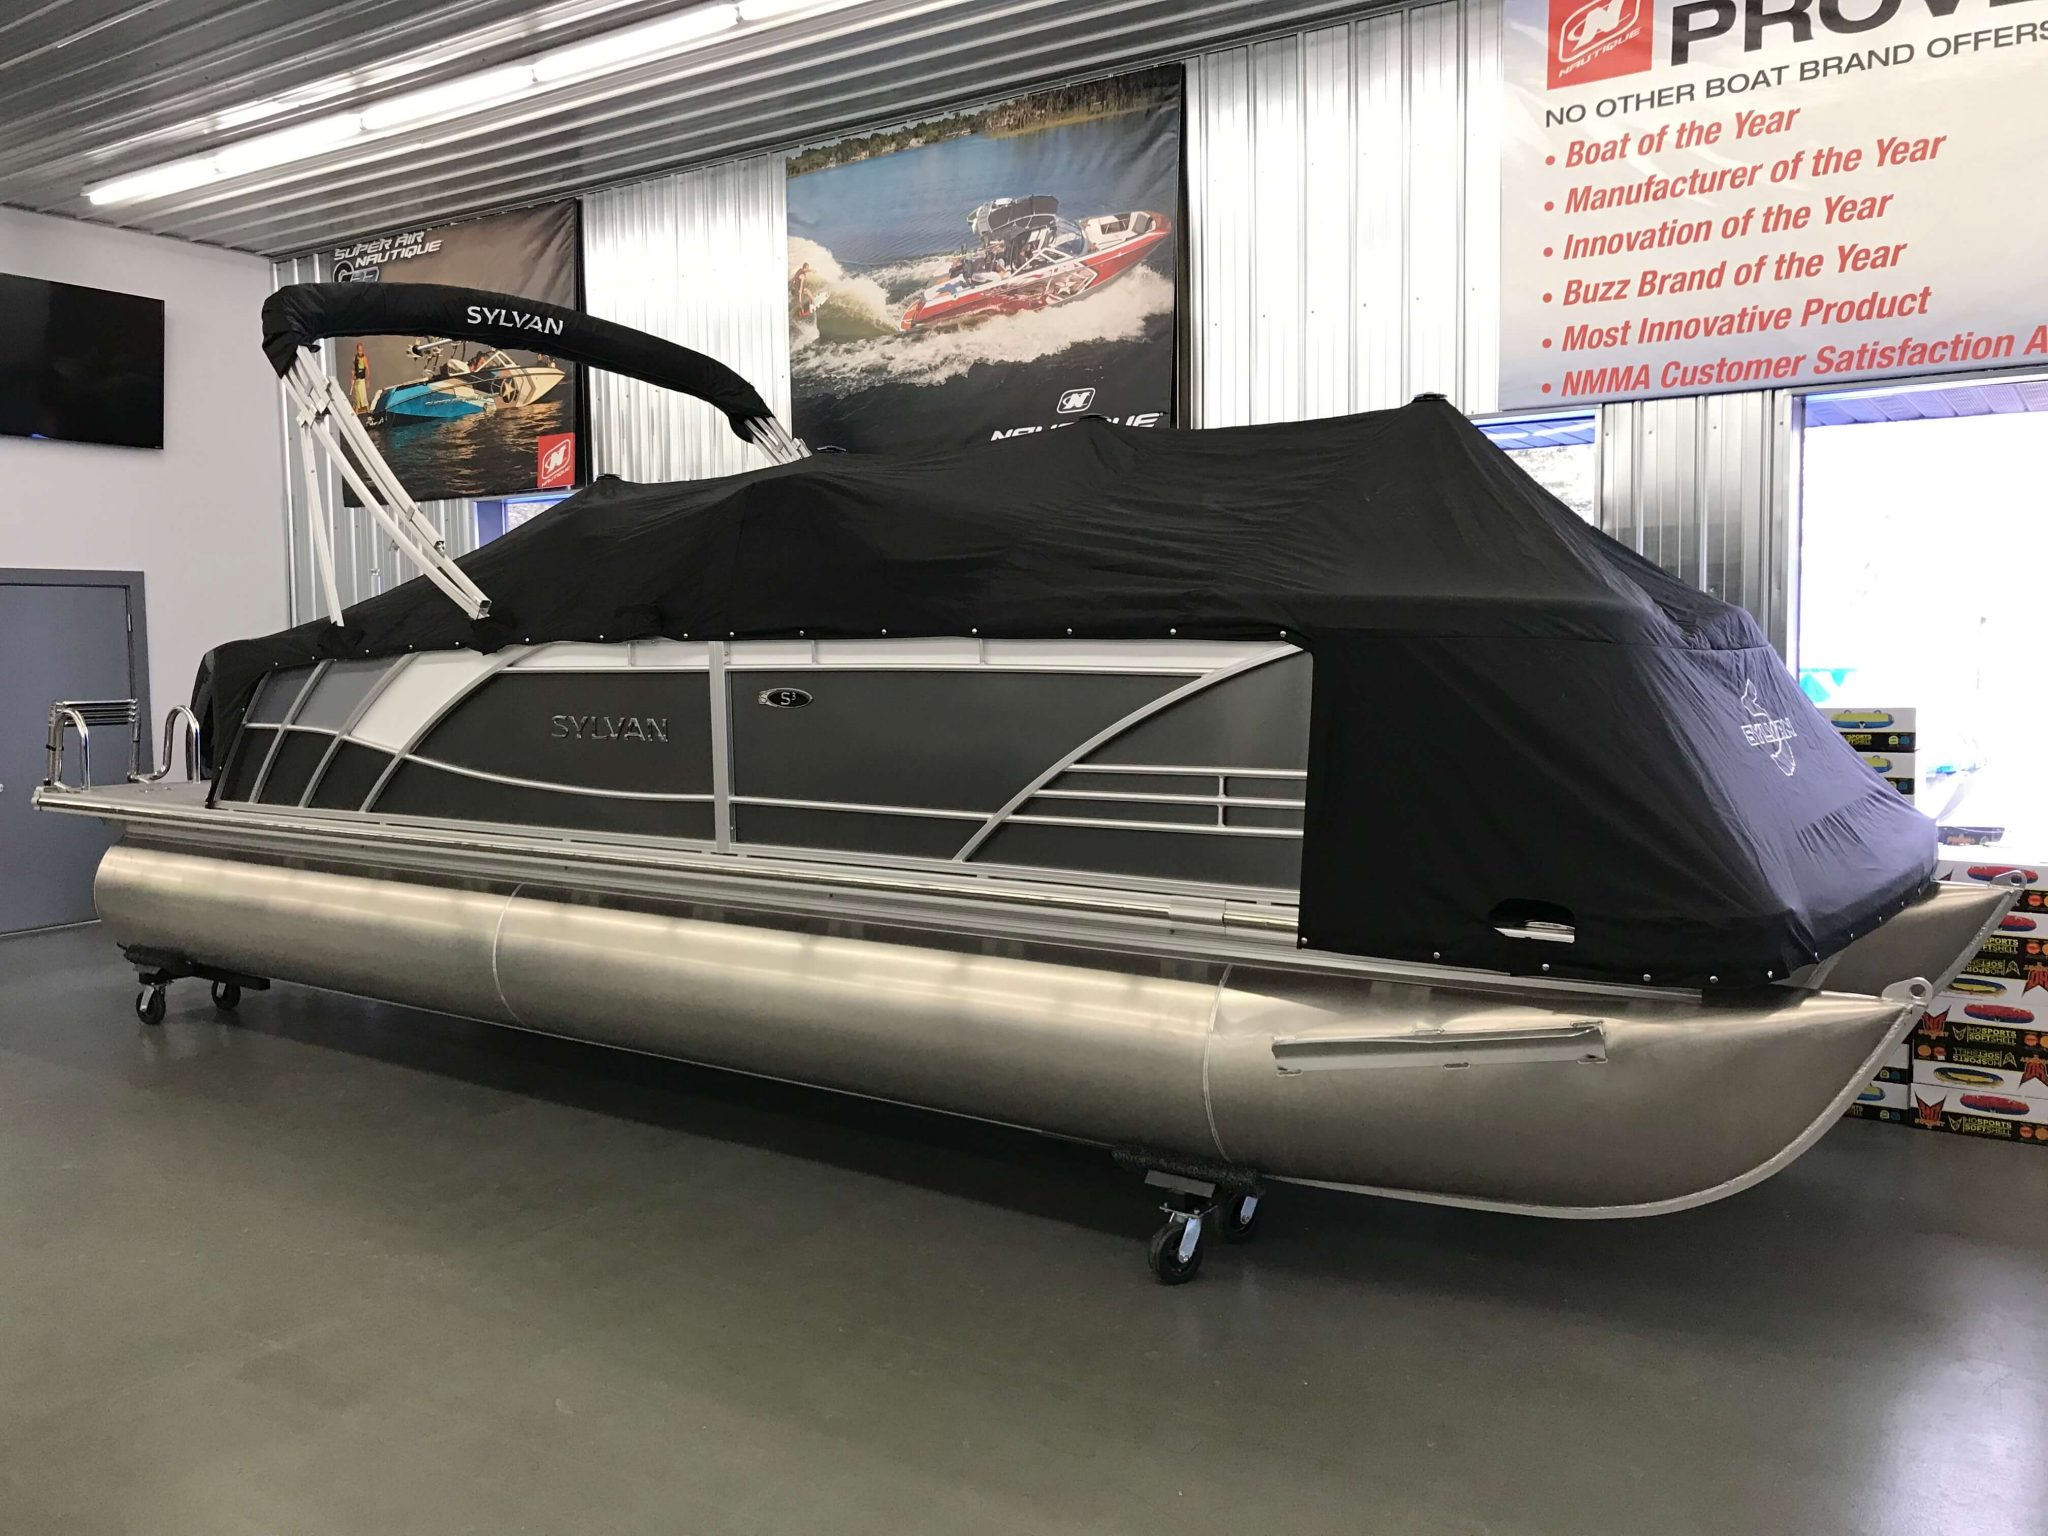 2019 Sylvan S3 Cruise Full Mooring Black Cover 1